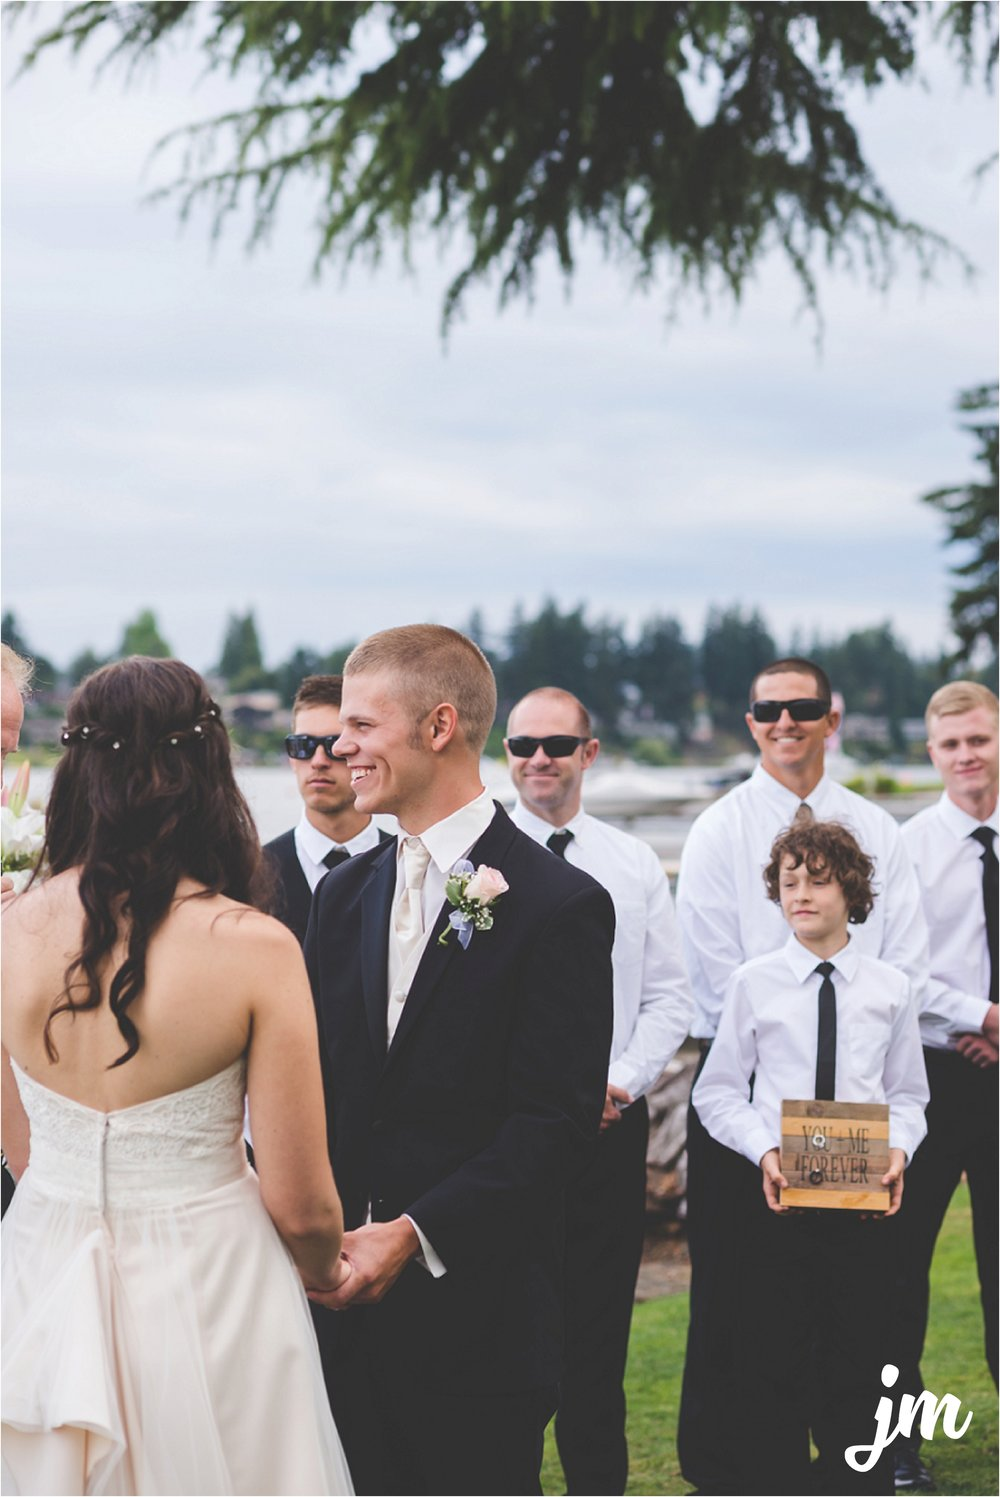 jannicka-mayte-intimate-backyard-lake-wedding-kent-wa-pacific-northwest-wedding-photographer_0046.jpg